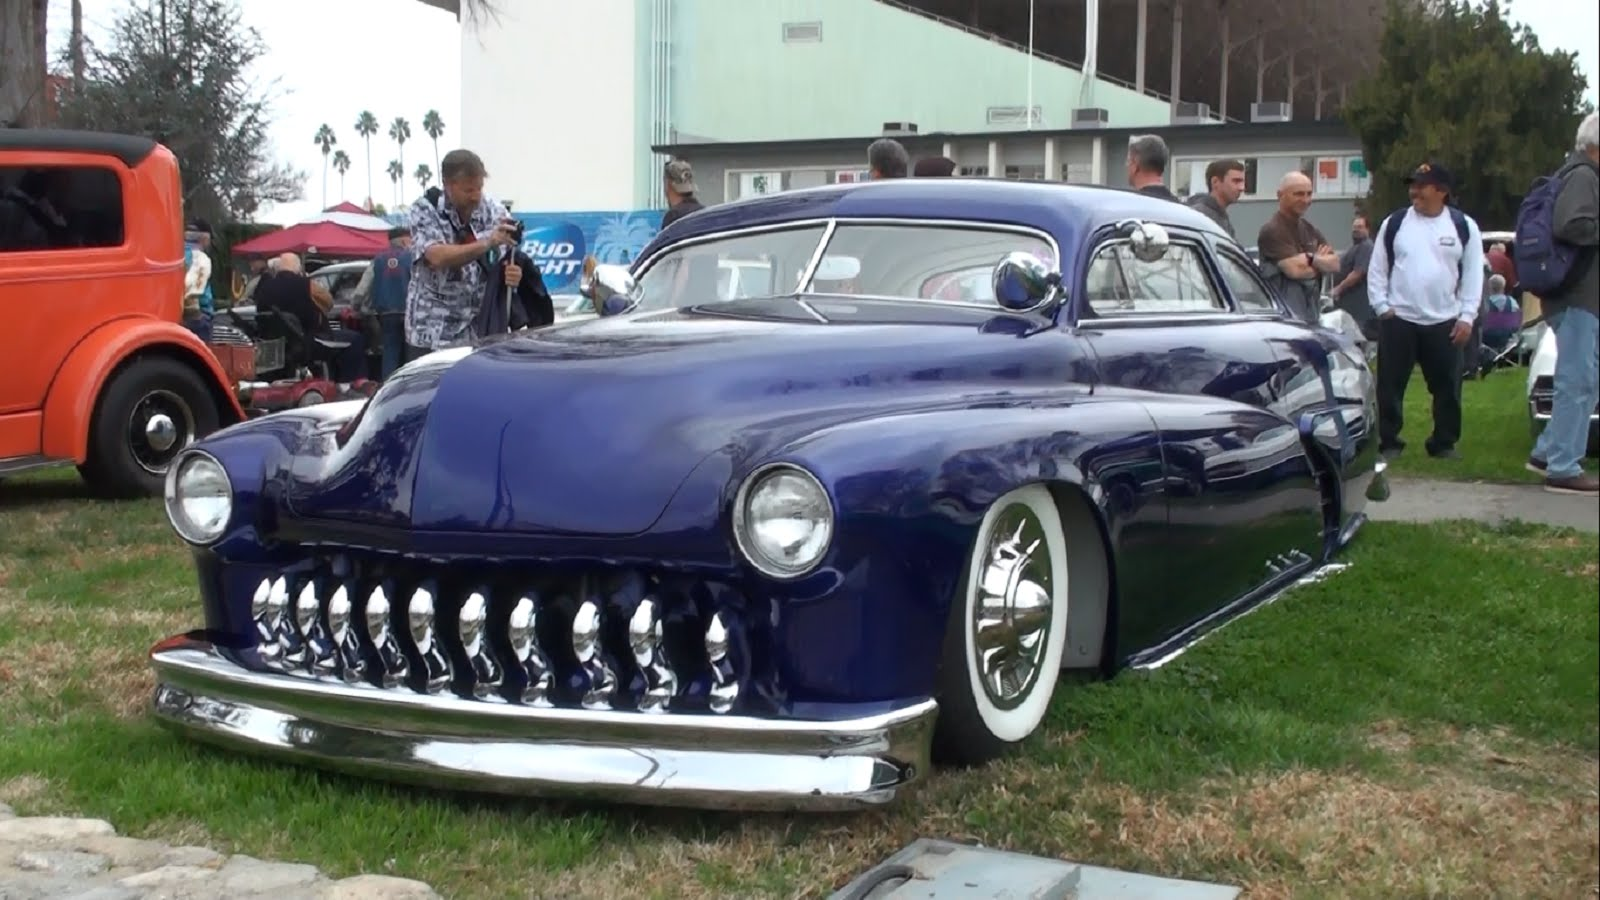 Check Out These Awesome Custom-Built And Modified Cars On Display In ...